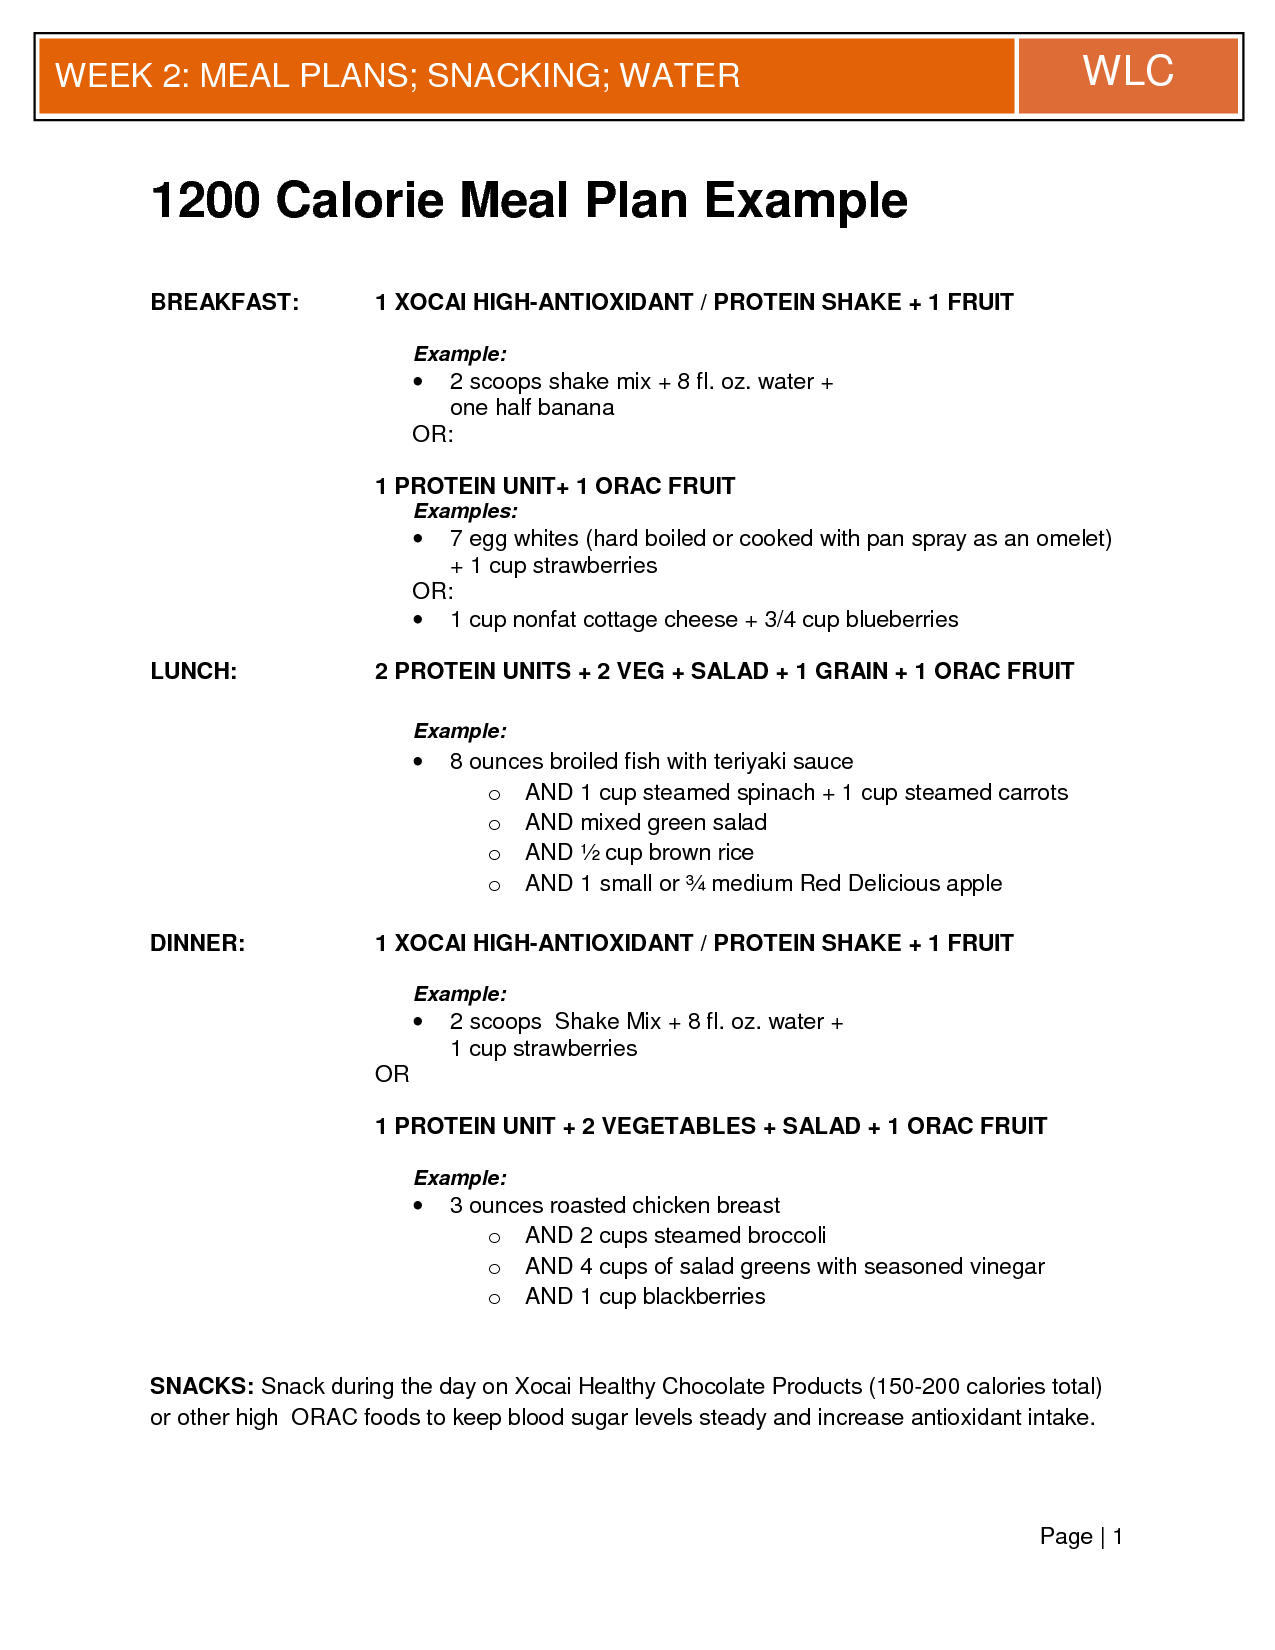 Diet plan for royal marines picture 3